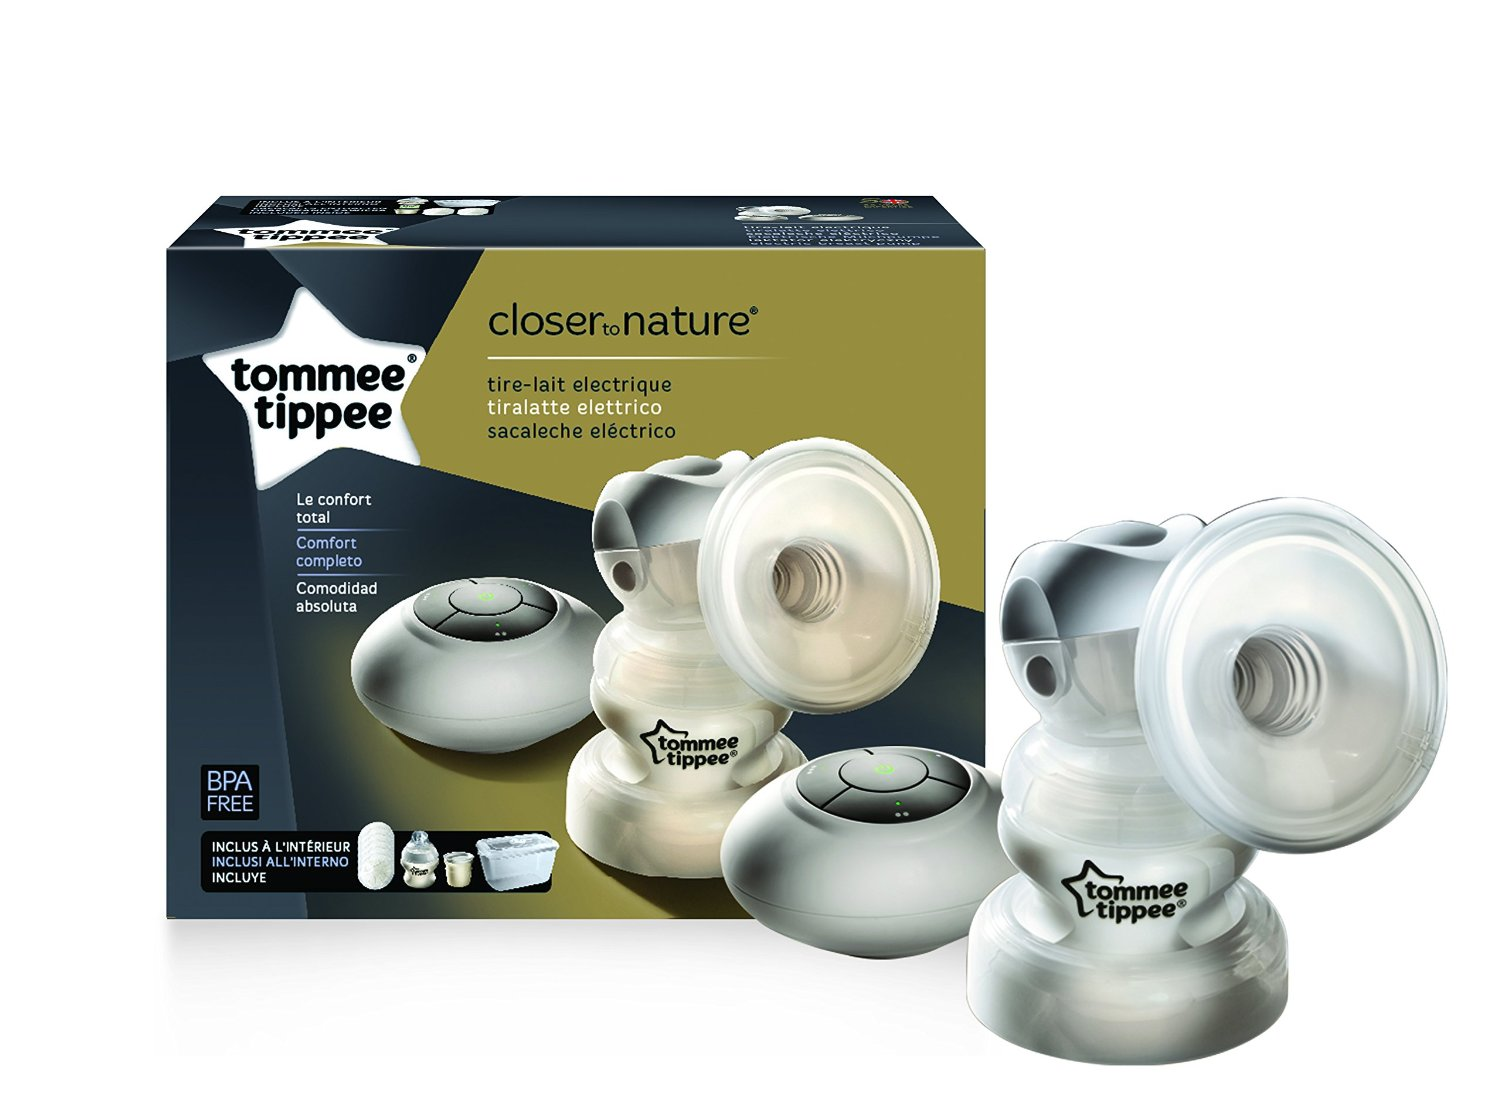 Tommee Tippee Tire-Lait electrique Closer To Nature